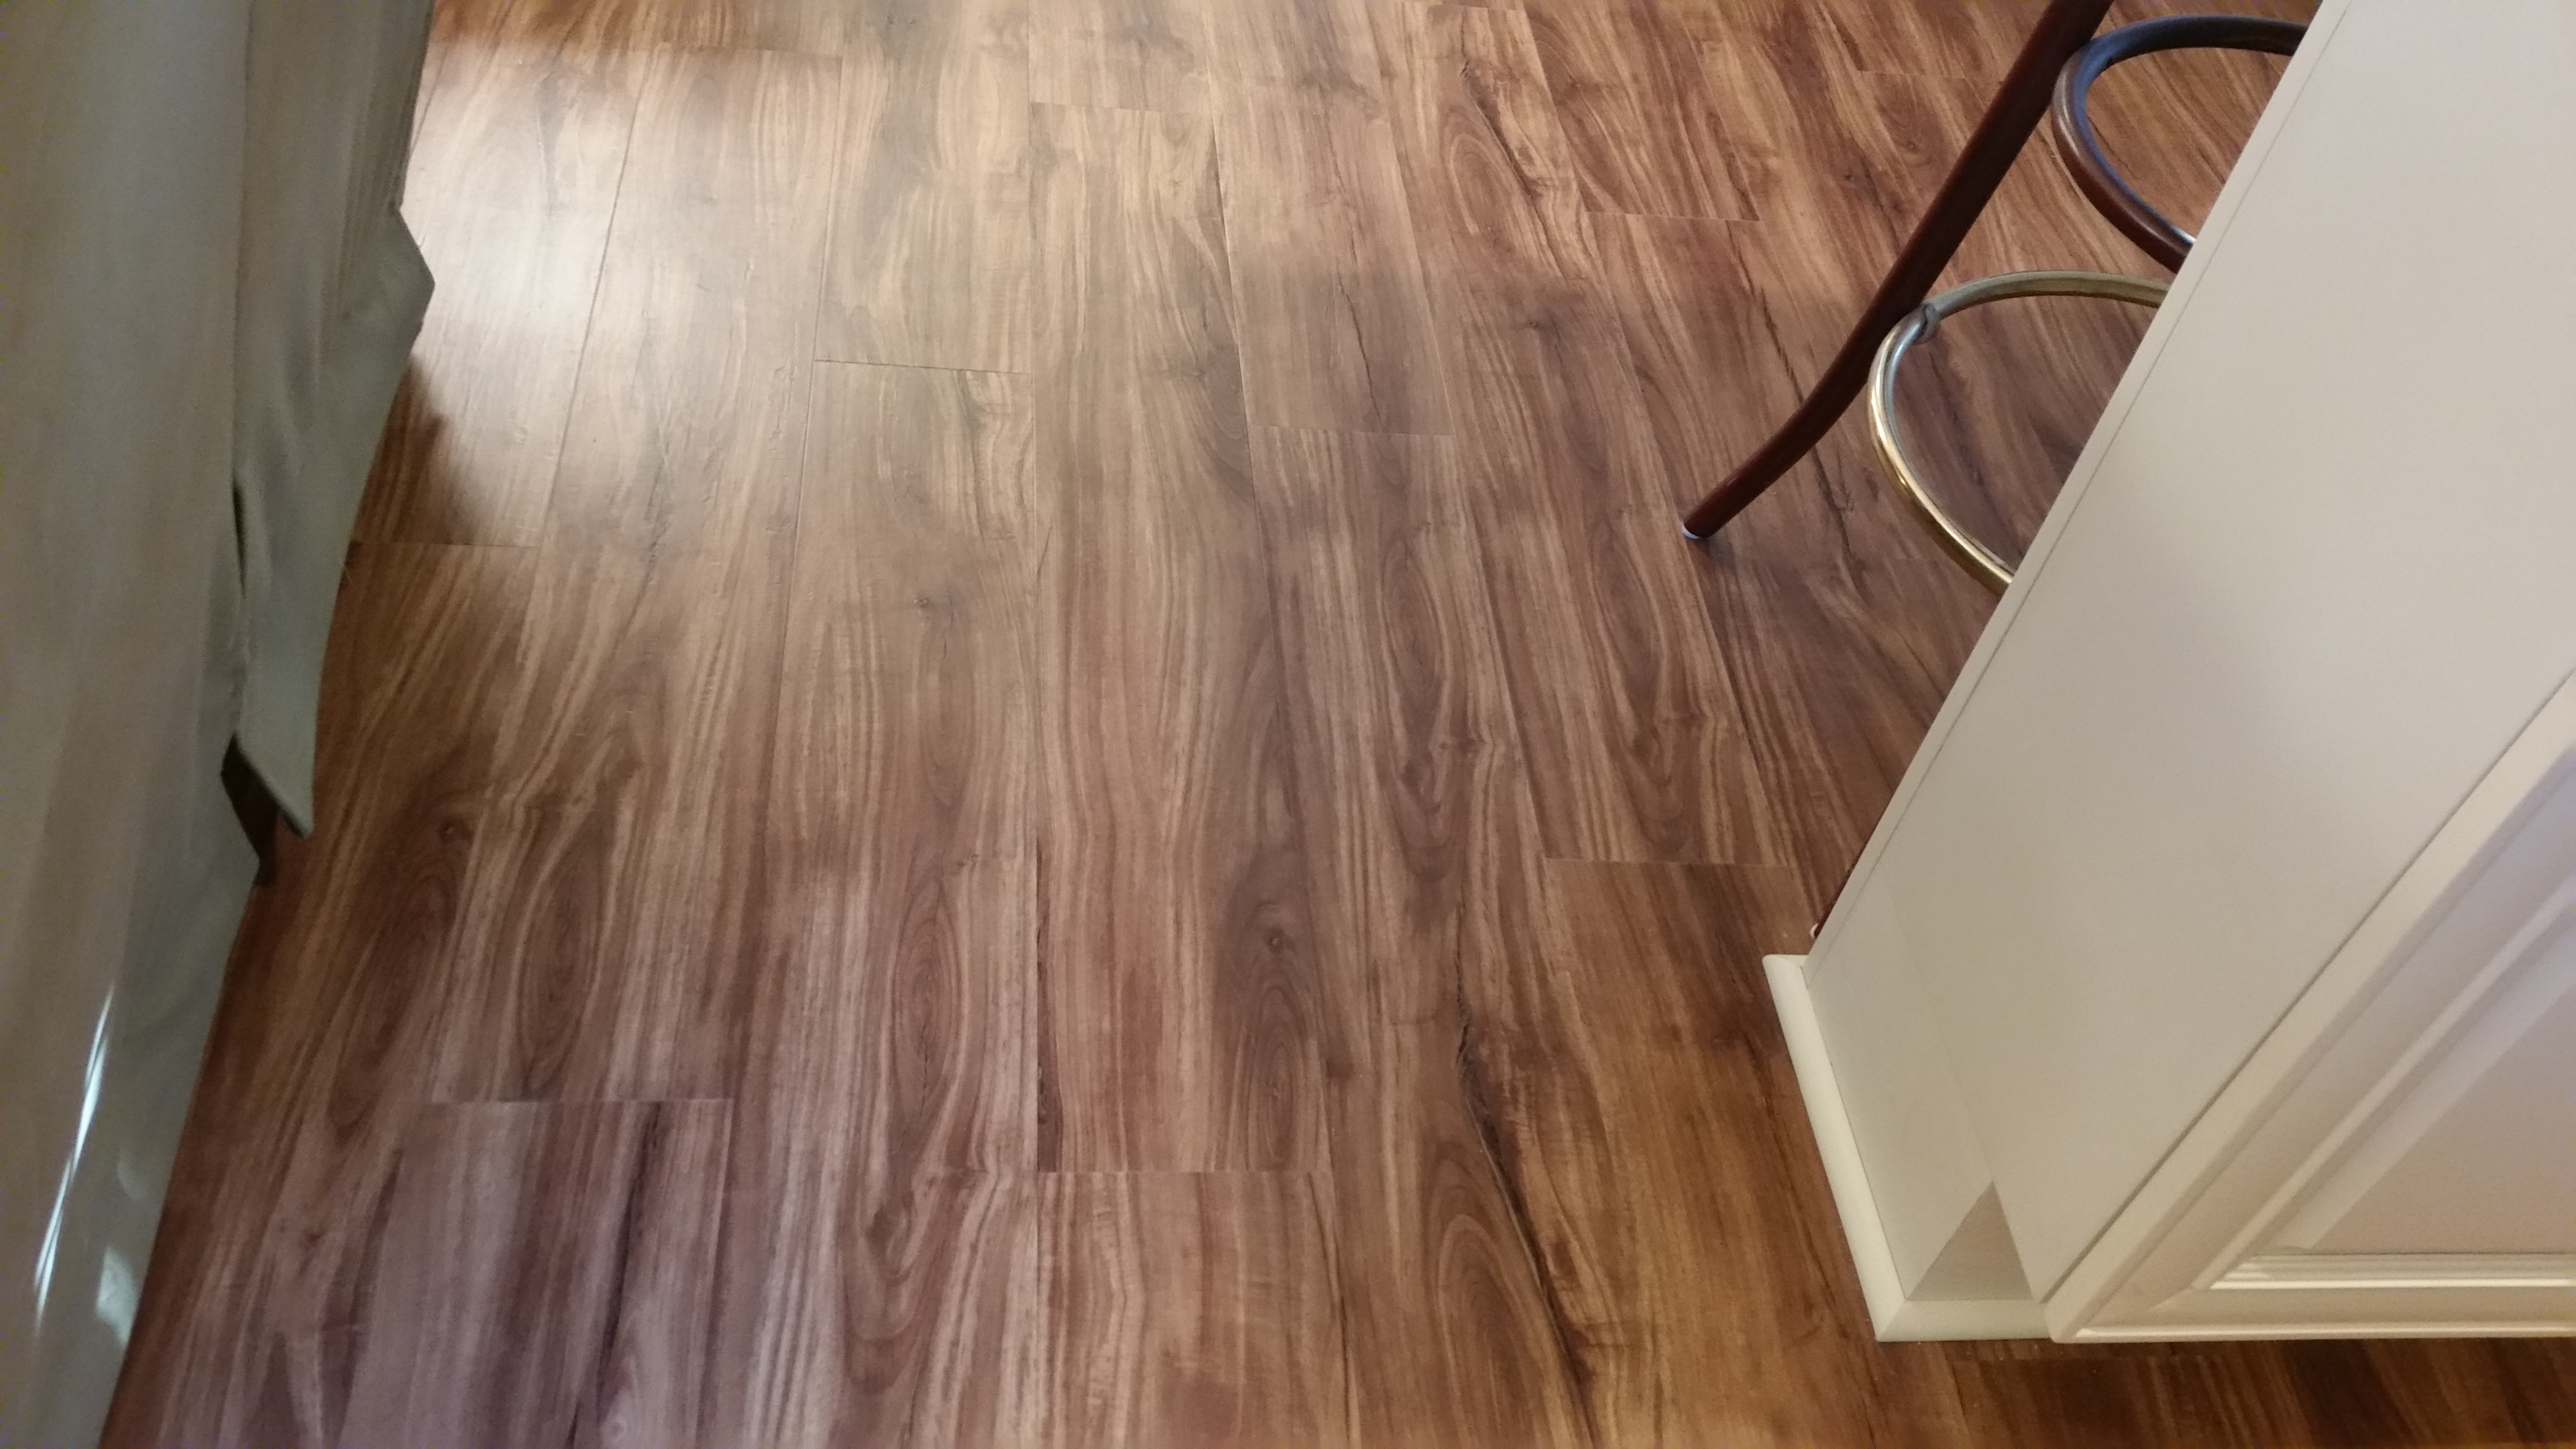 Aquawalk laminate flooring